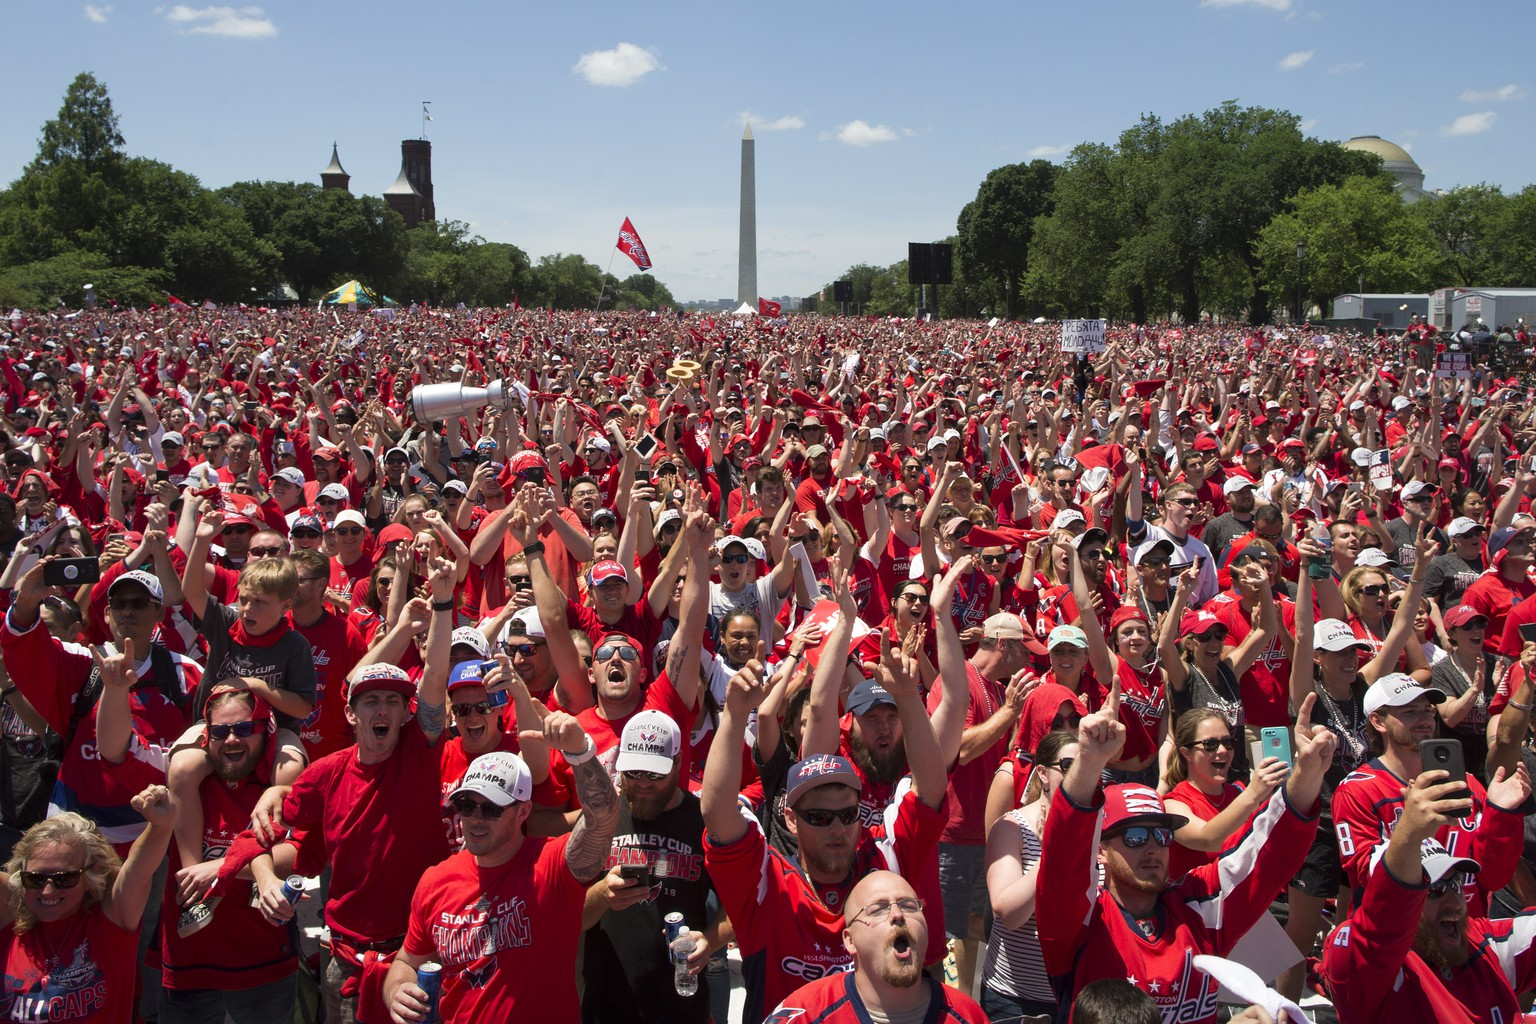 epa06803171 Fans cheer during a victory celebration for the 2018 Stanley Cup Champions Washington Capitals, on the National Mall in Washington, DC, USA, 12 June 2018. No professional Washington sports team had won a championship since the Washington Redskins won the Super Bowl in 1992.  EPA/MICHAEL REYNOLDS